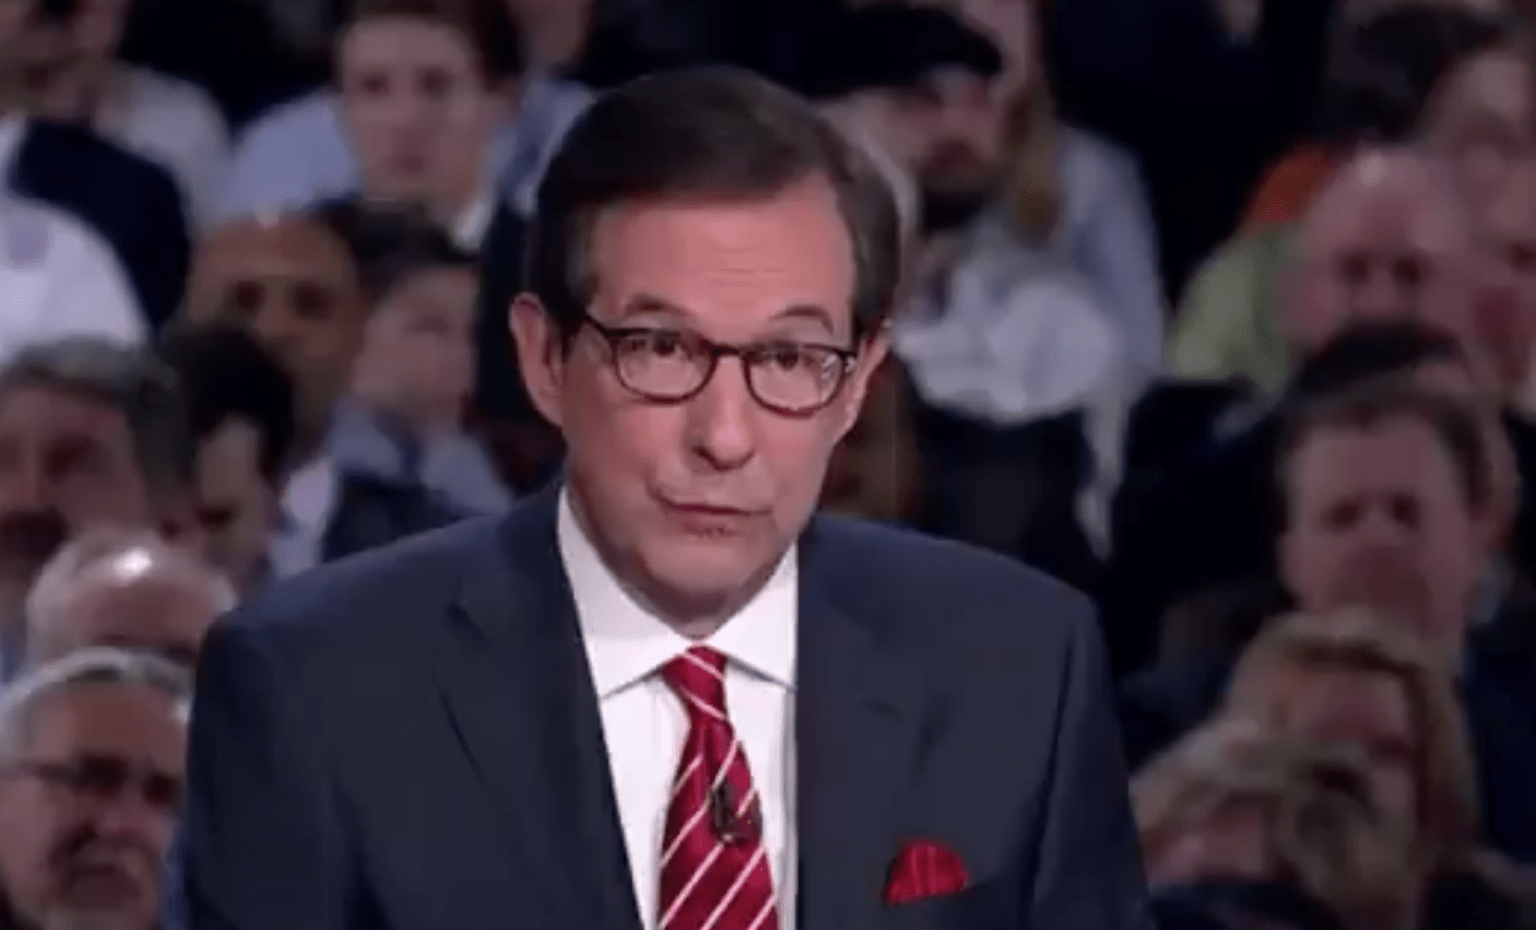 Face Check: 'Moderator' Chris Wallace implies Trump never condemned white supremacists. Verdict: False